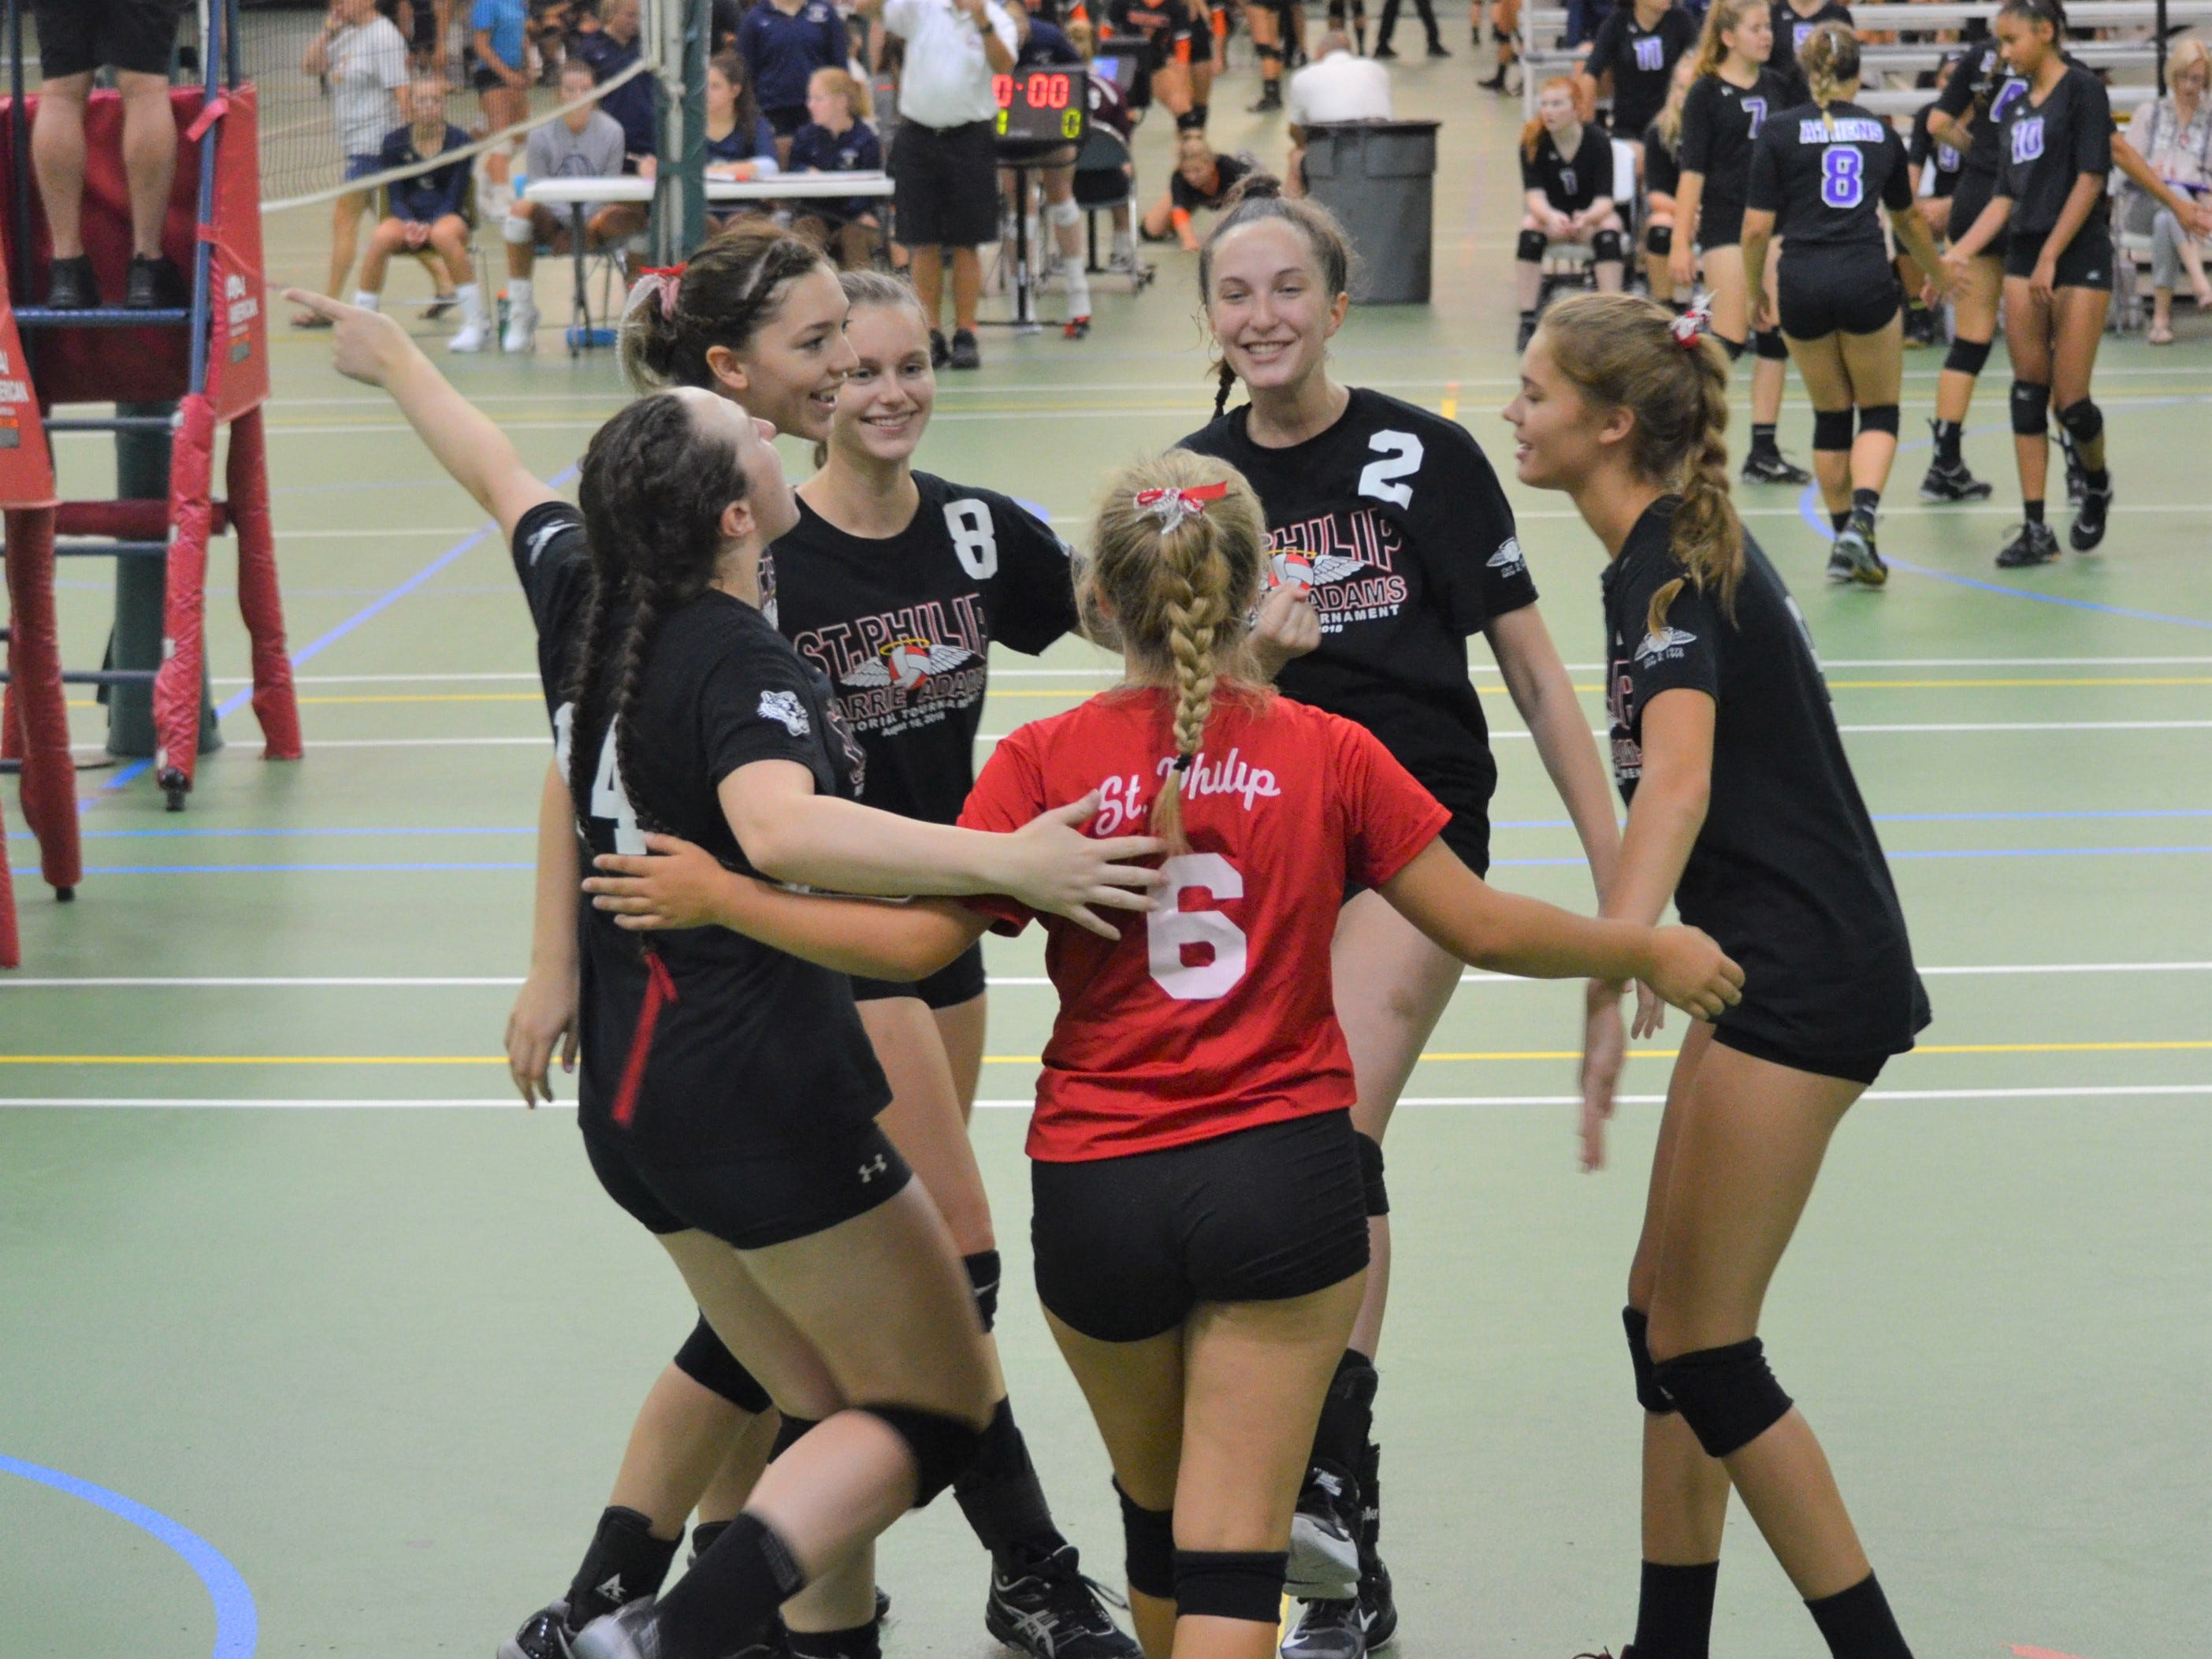 St. Philip players celebrate a point during the first weekend of the volleyball season at the Carrie Adams Memorial Tournament in Battle Creek on Saturday.